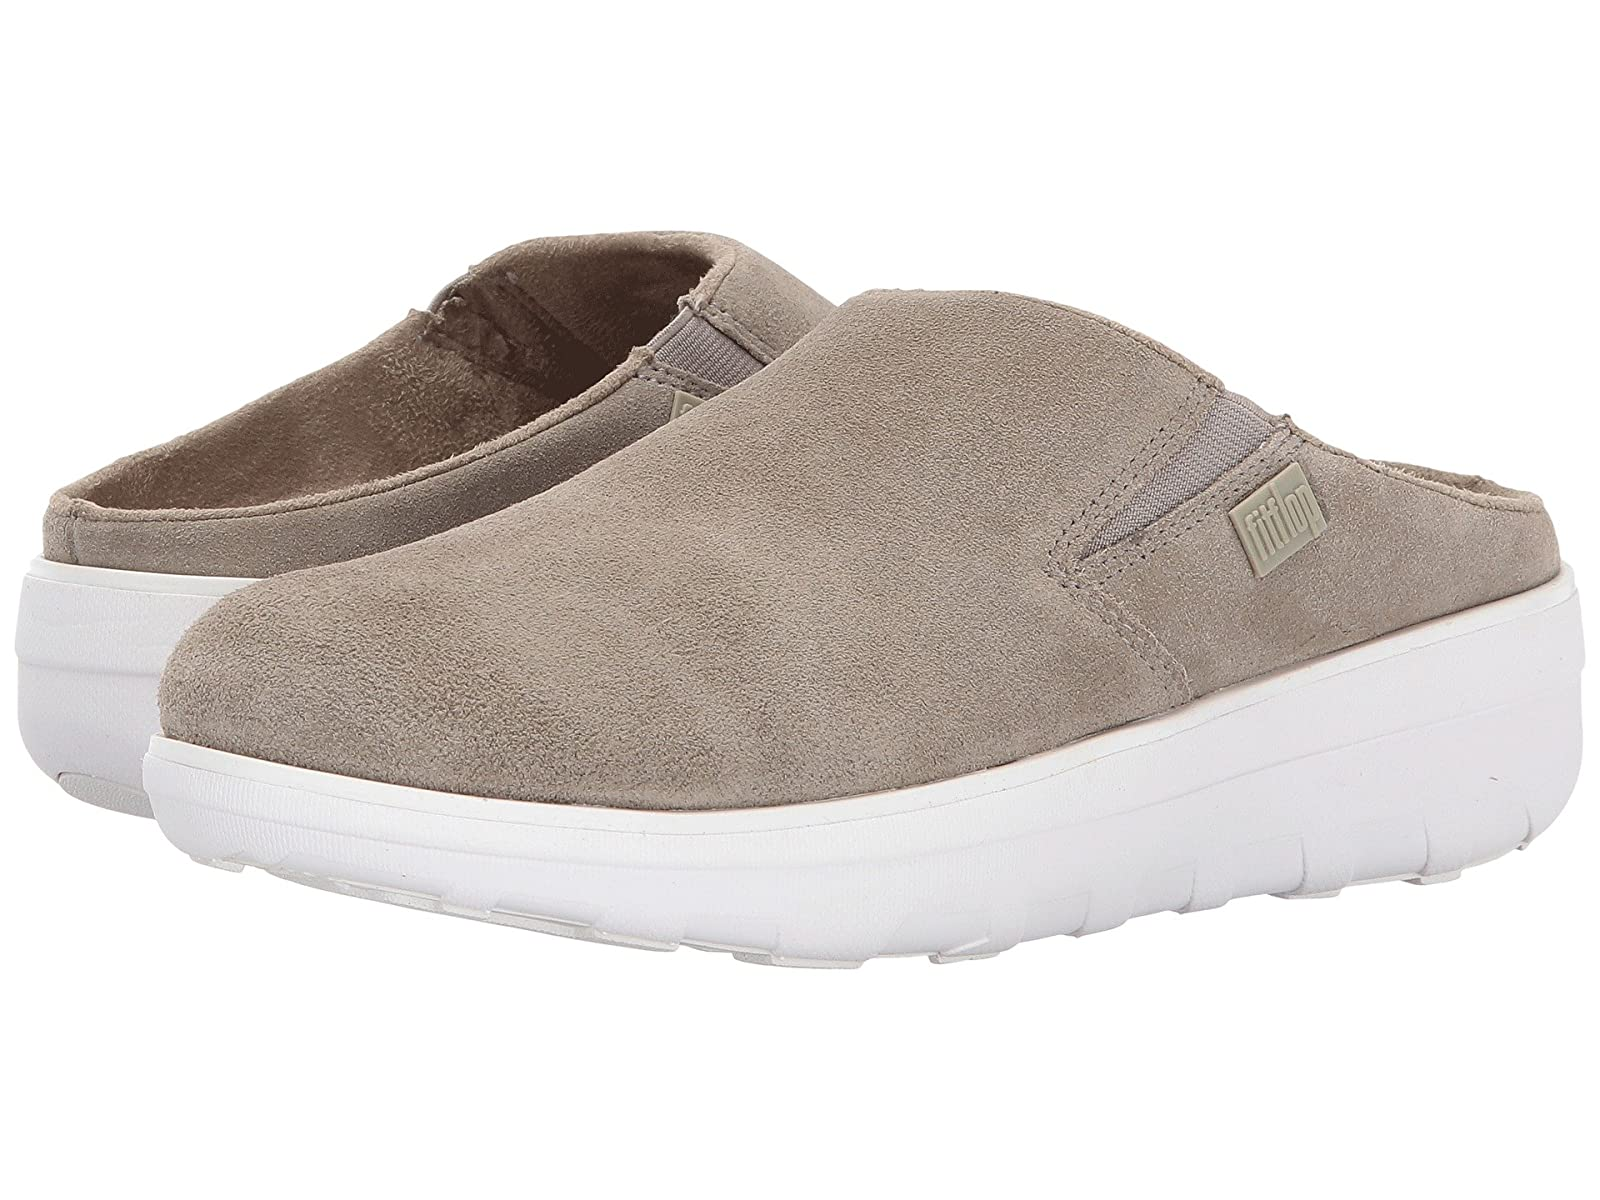 FitFlop full Loaff Suede Clogs <Take full FitFlop advantage of materials<Men's/Women's db77ce